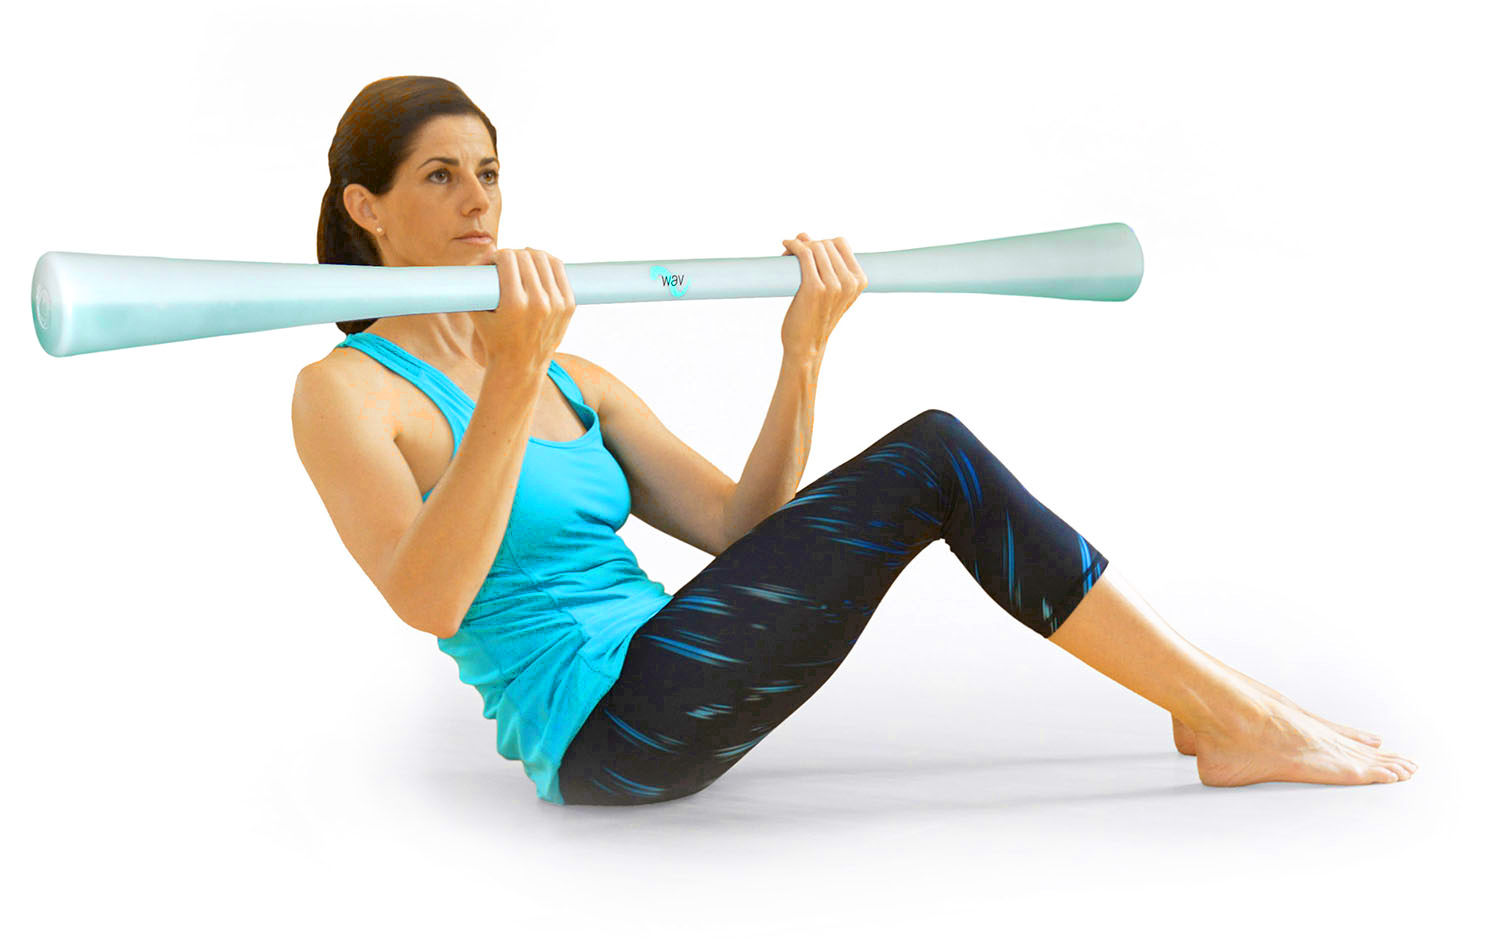 Core exercises for stability and strength